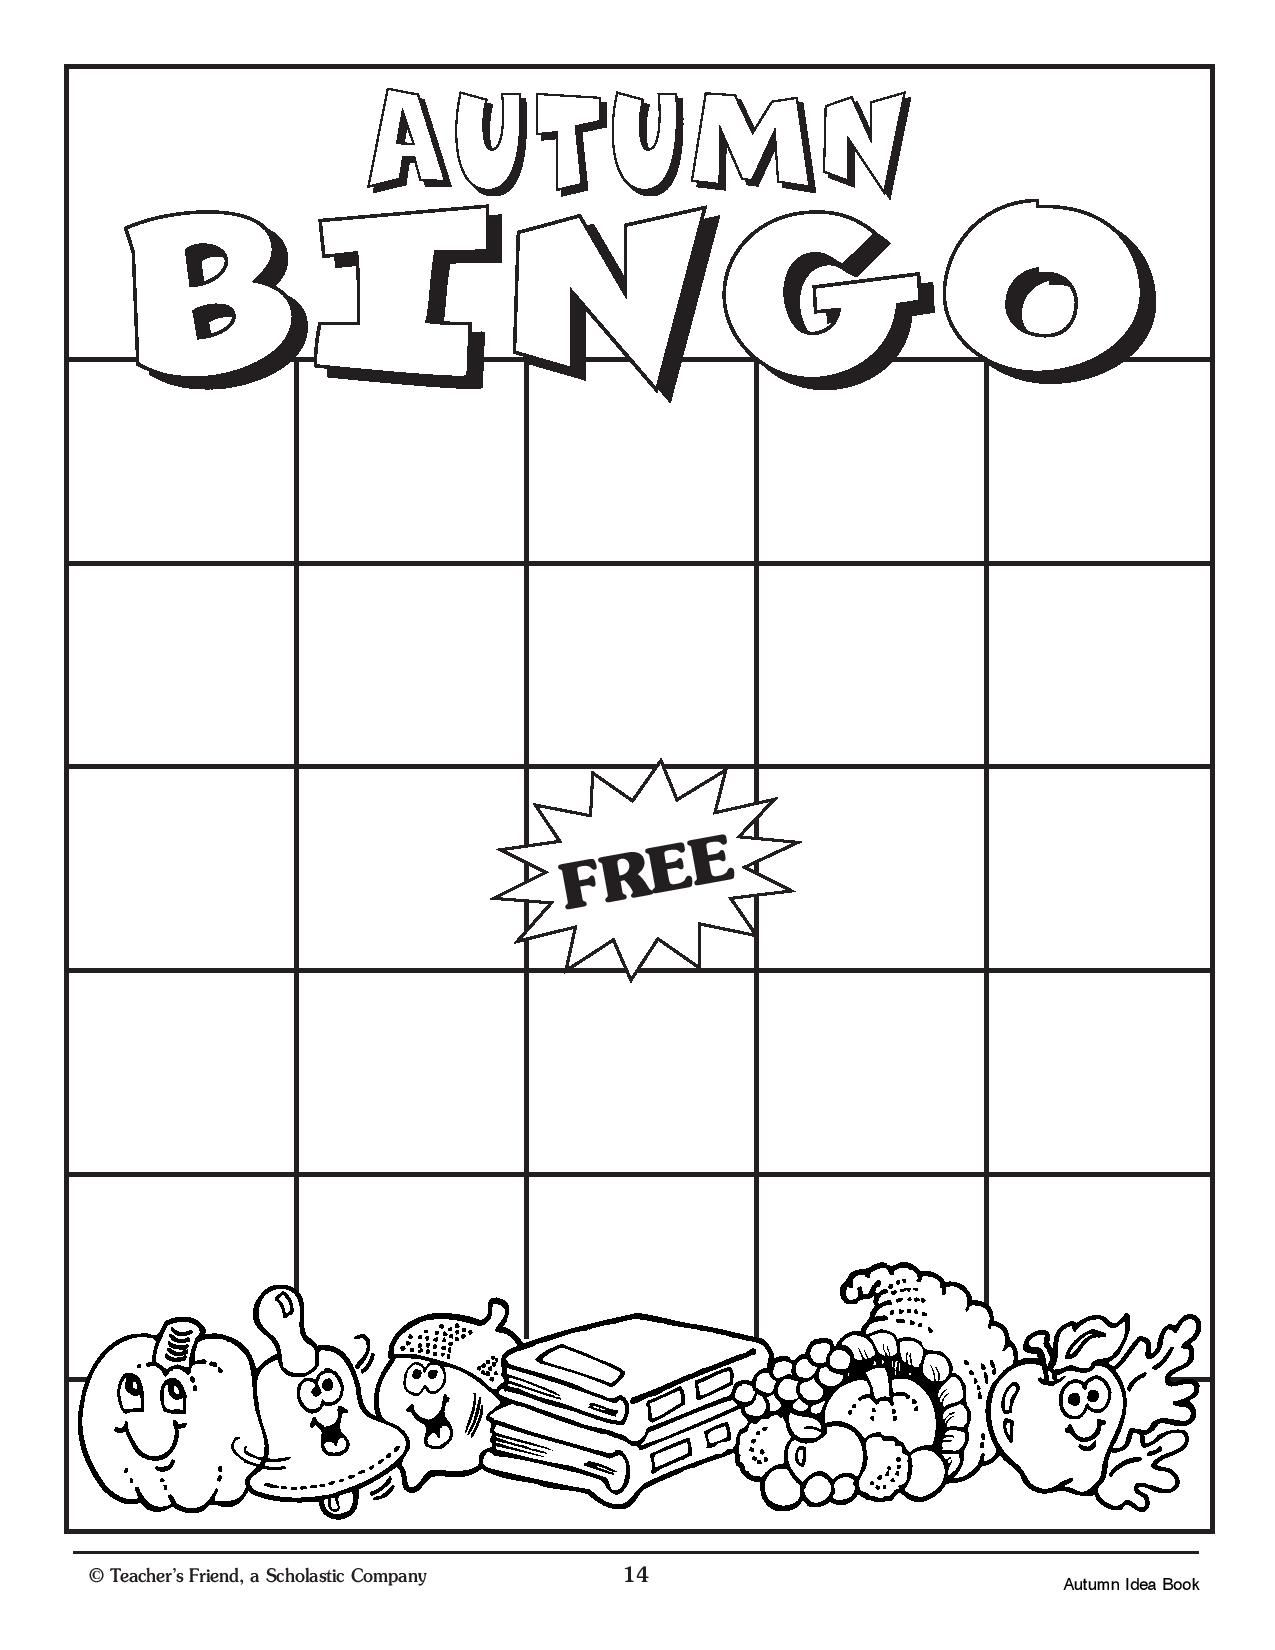 Playing This Word Bingo Game With Your Kids Is An Exciting Way To Celebrate Autumn Page 2 Of 2